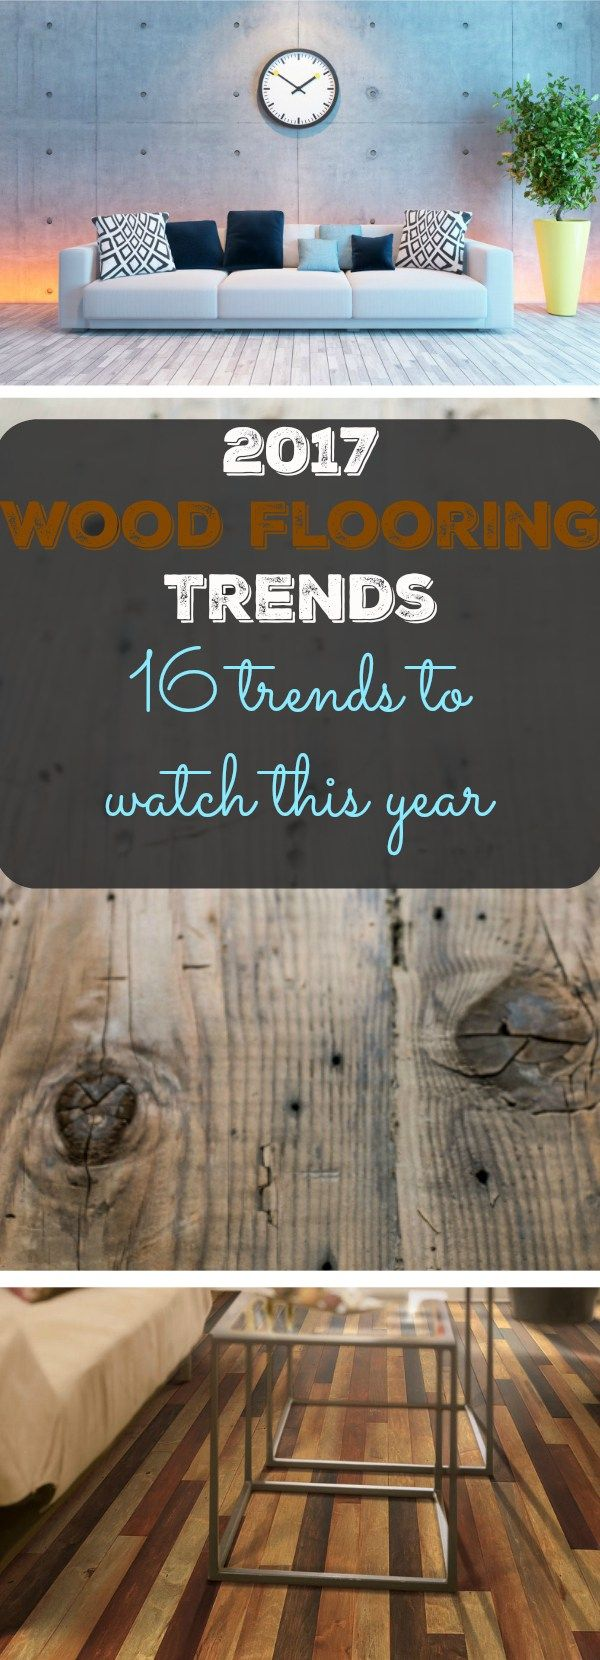 2017 wood flooring trends: 16 trends to watch this year | wood